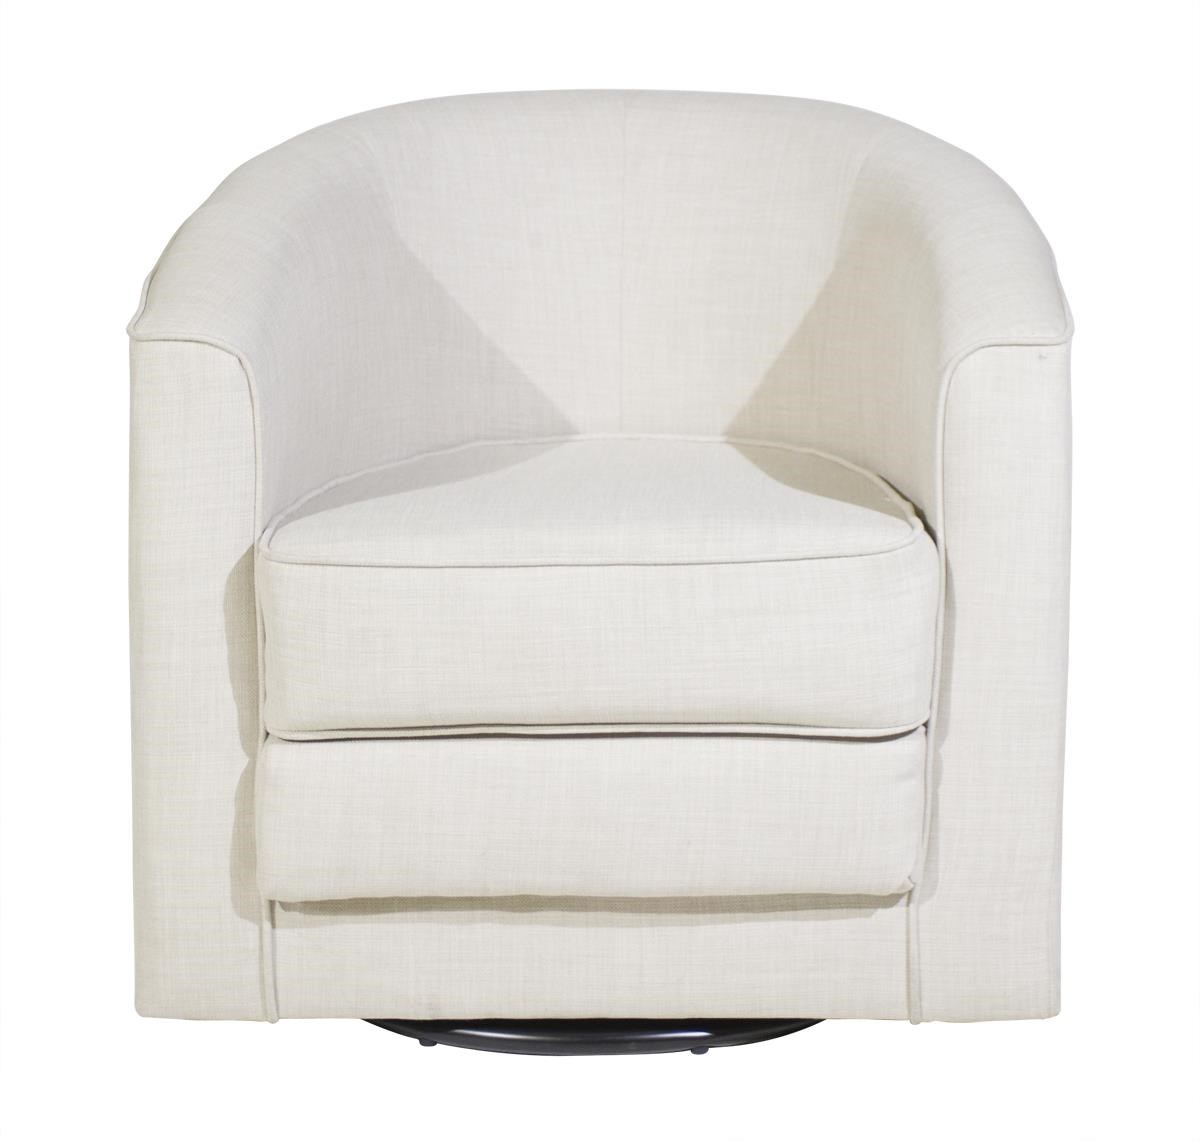 Actona Company Tub Swivel Chair - Item Number: H00006732 Tub Sand